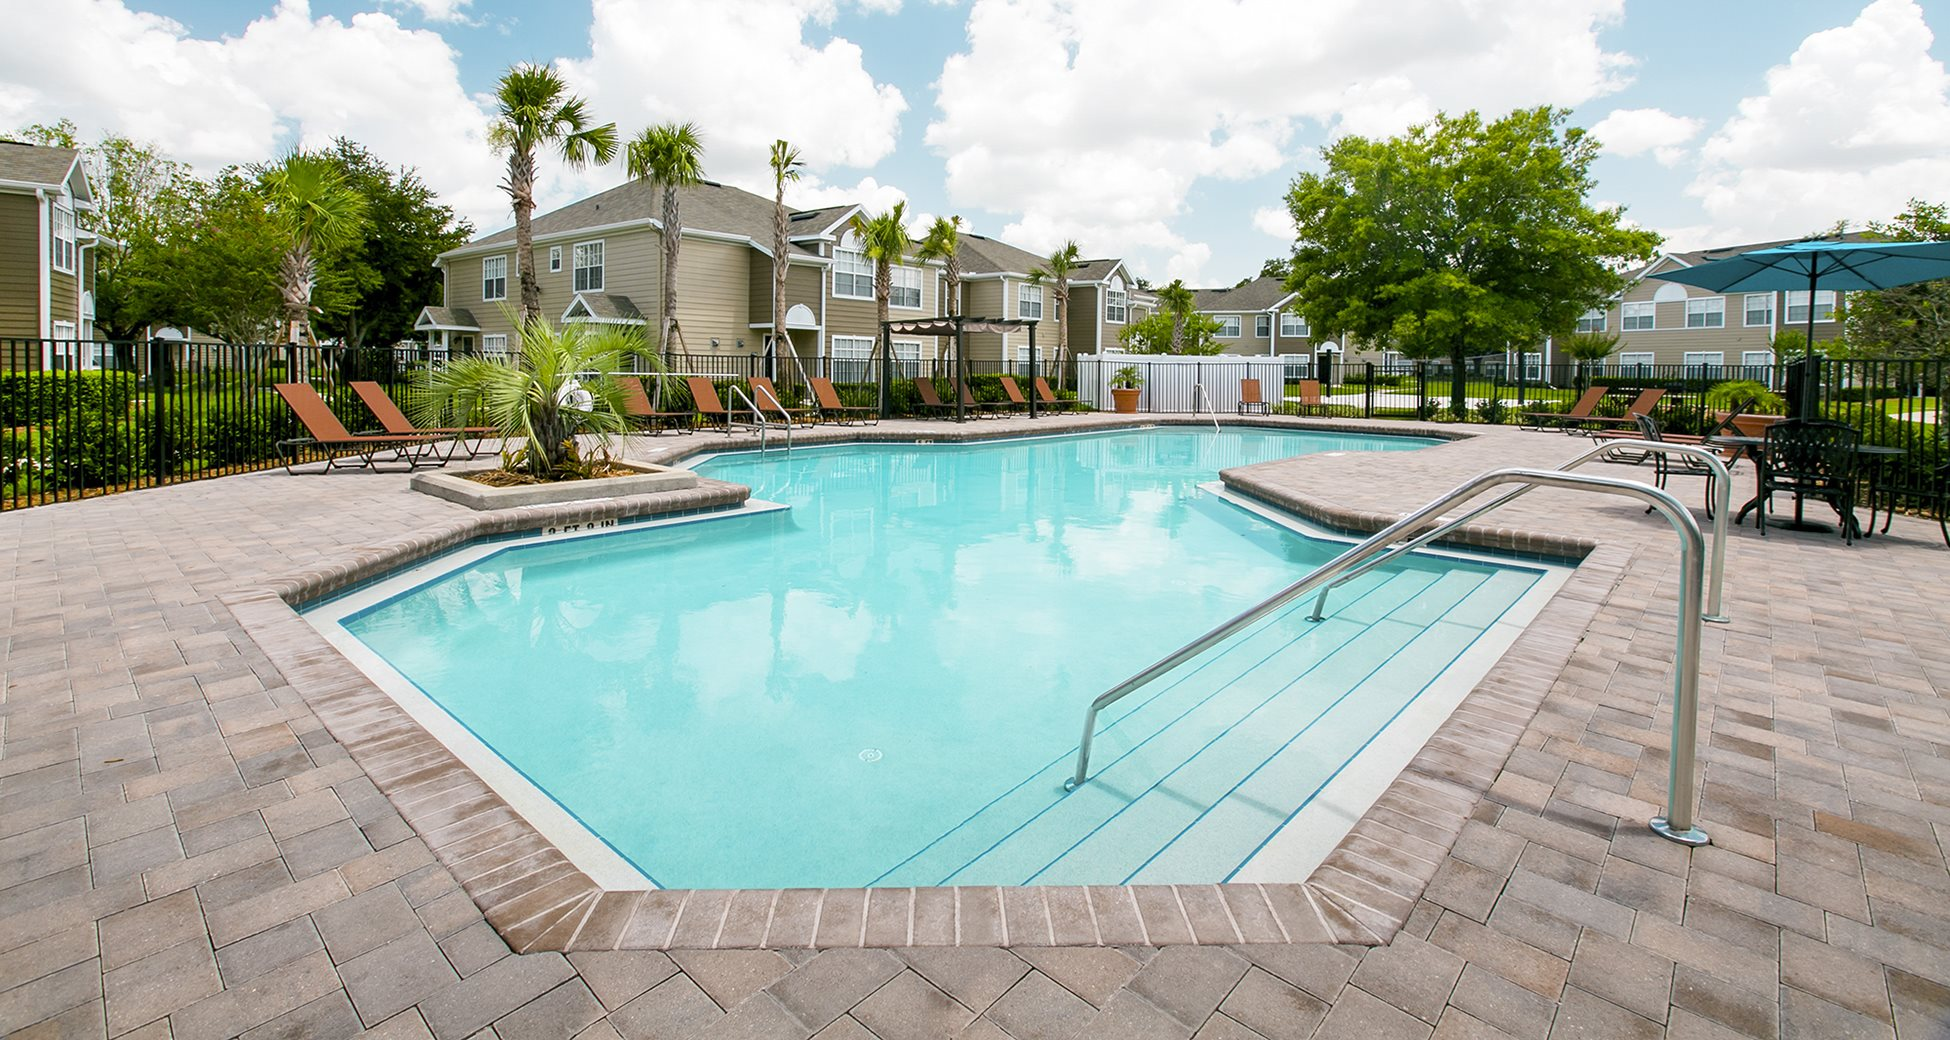 Brooke Commons Apartments for rent in Orlando, FL. Make this community your new home or visit other Concord Rents communities at ConcordRents.com. Pool